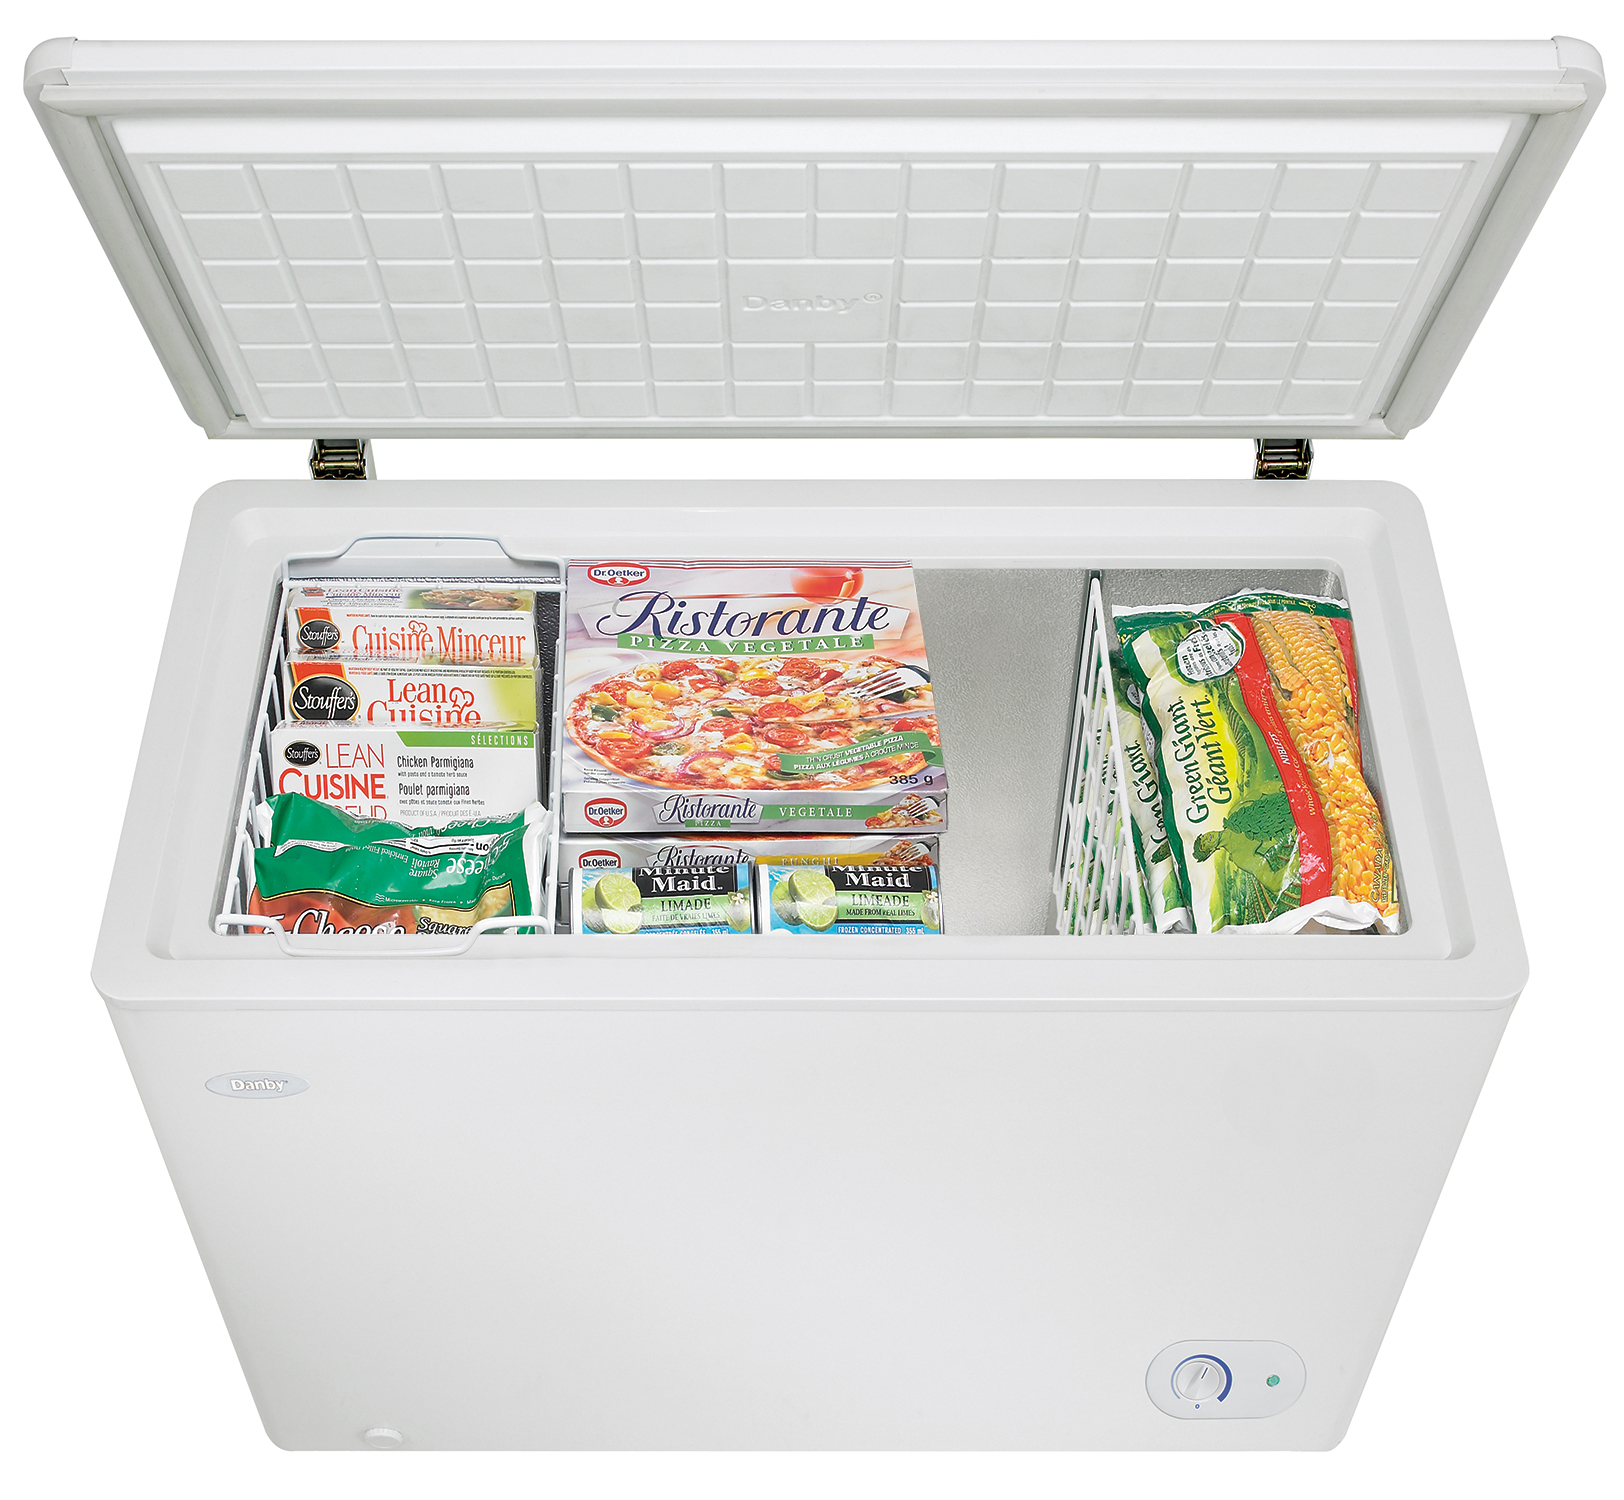 Danby 7.2 cu. ft. Chest Freezer DCF072A3WDB-3, White